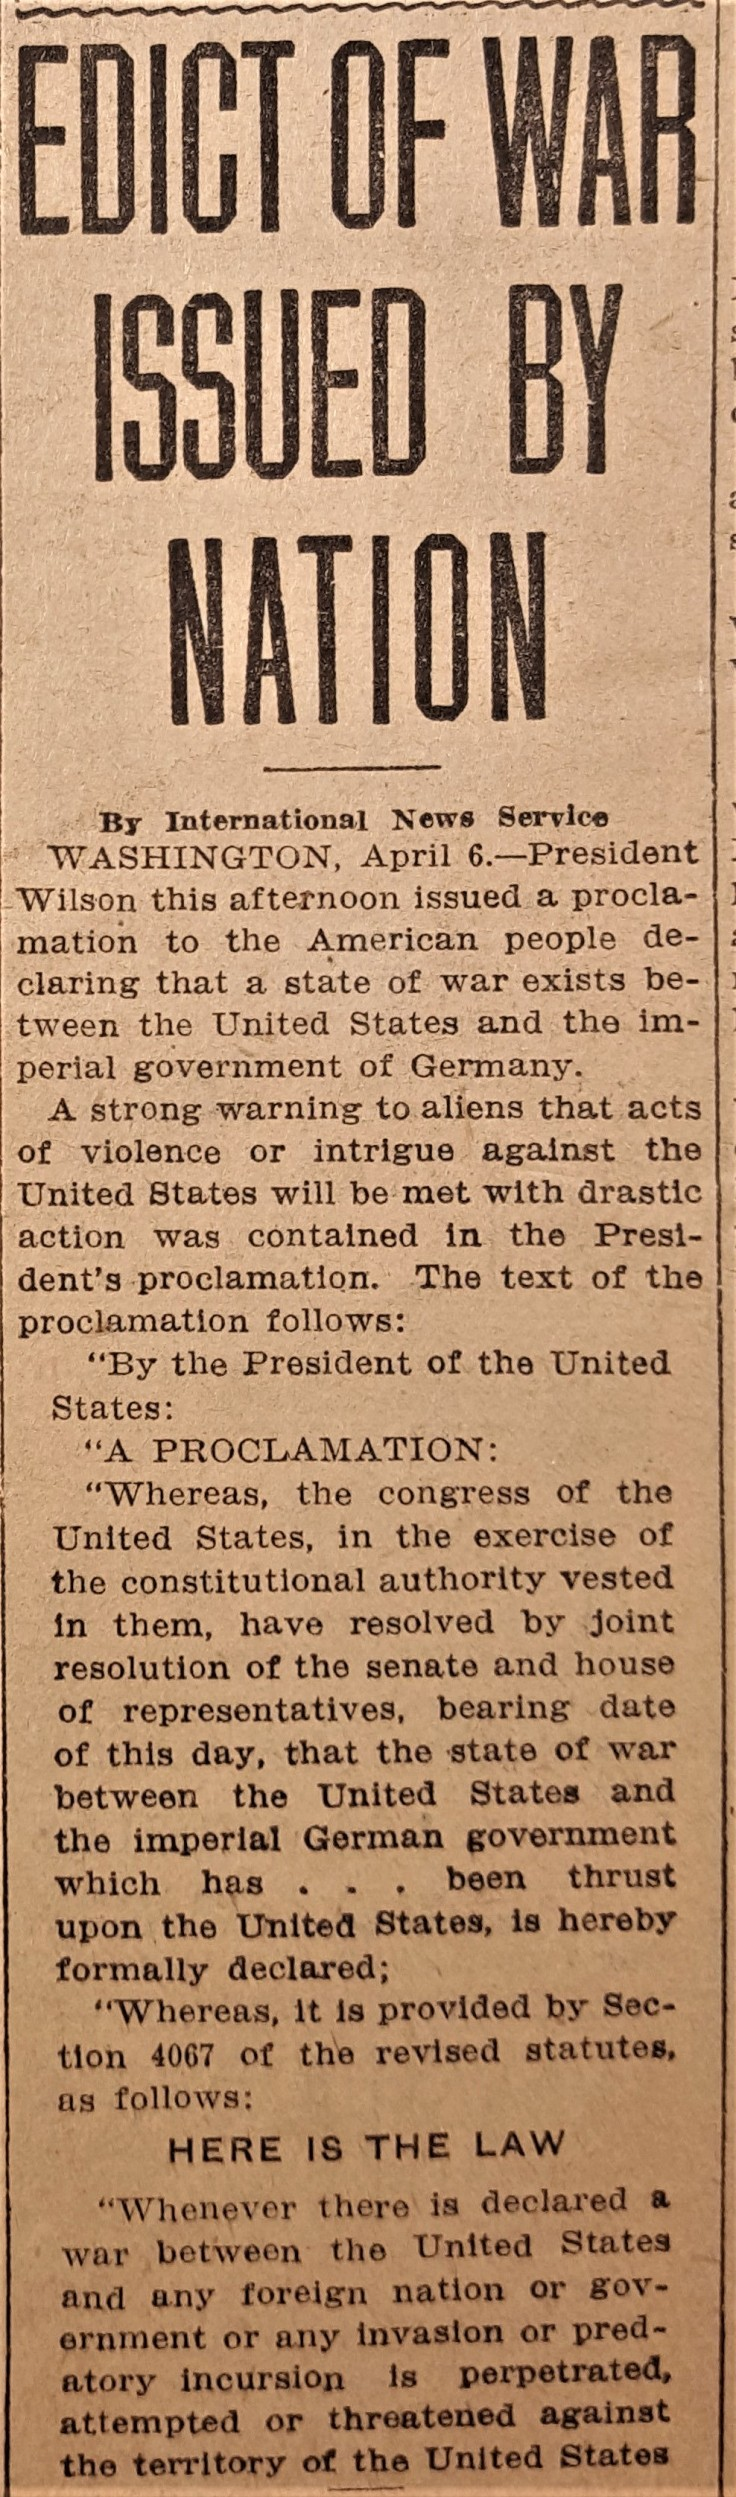 Herald War Proclamation 6Apr17